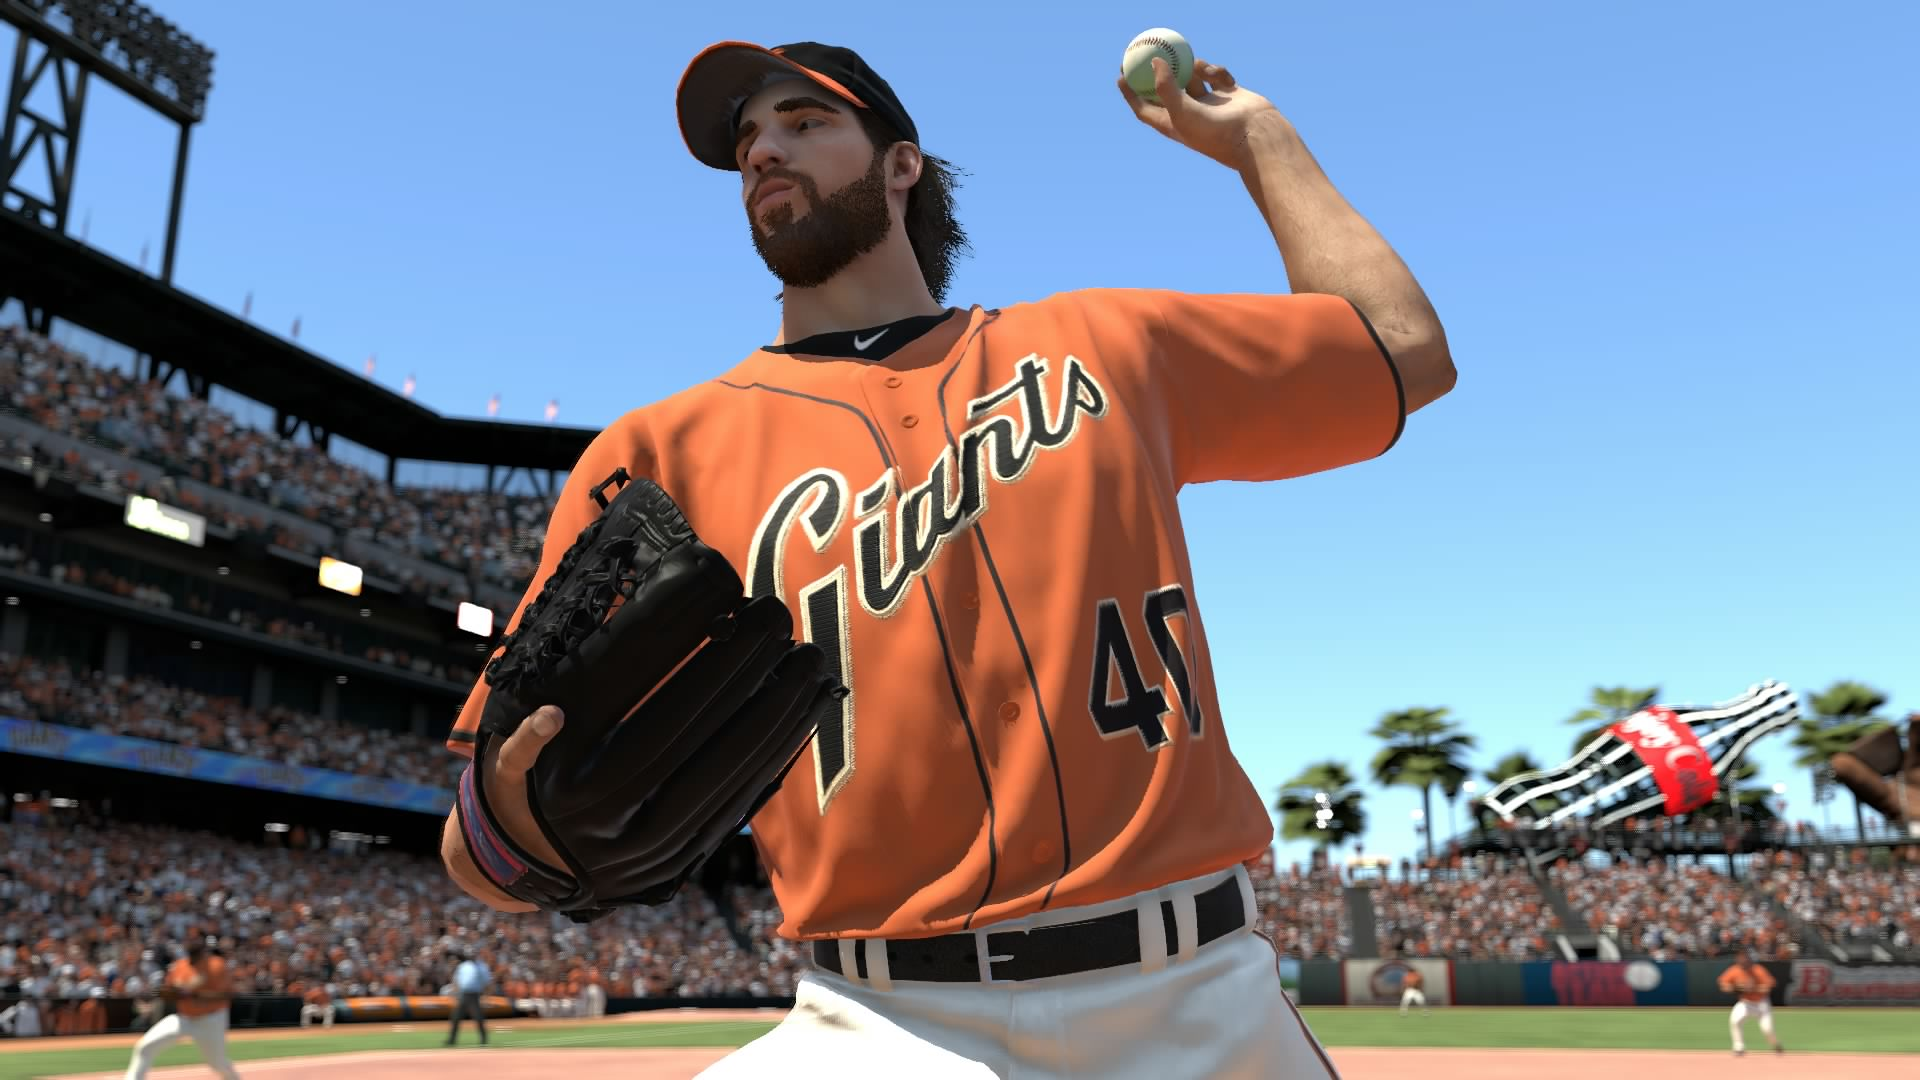 Mlb the show matchmaking